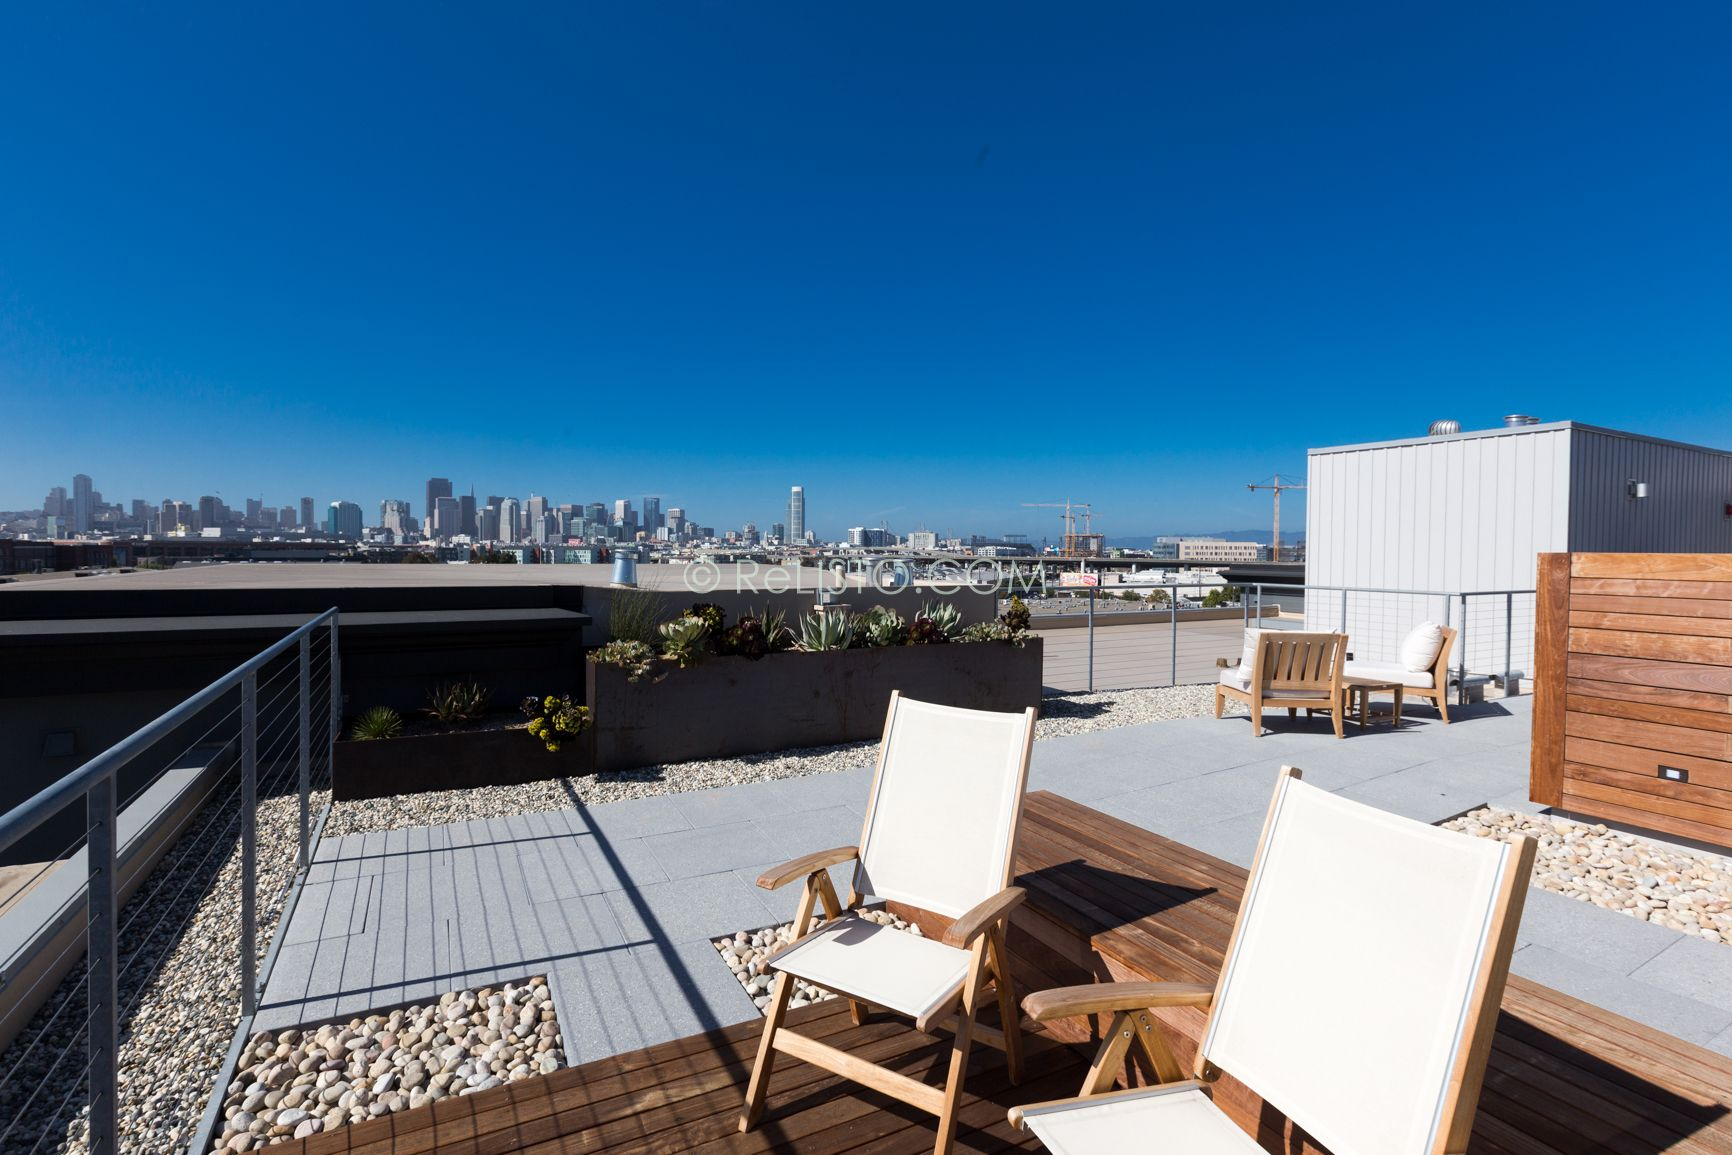 rooftop furniture. Roof Deck With Patio Furniture / Chairs San Francisco- Minimalist Design, Top Rooftop T